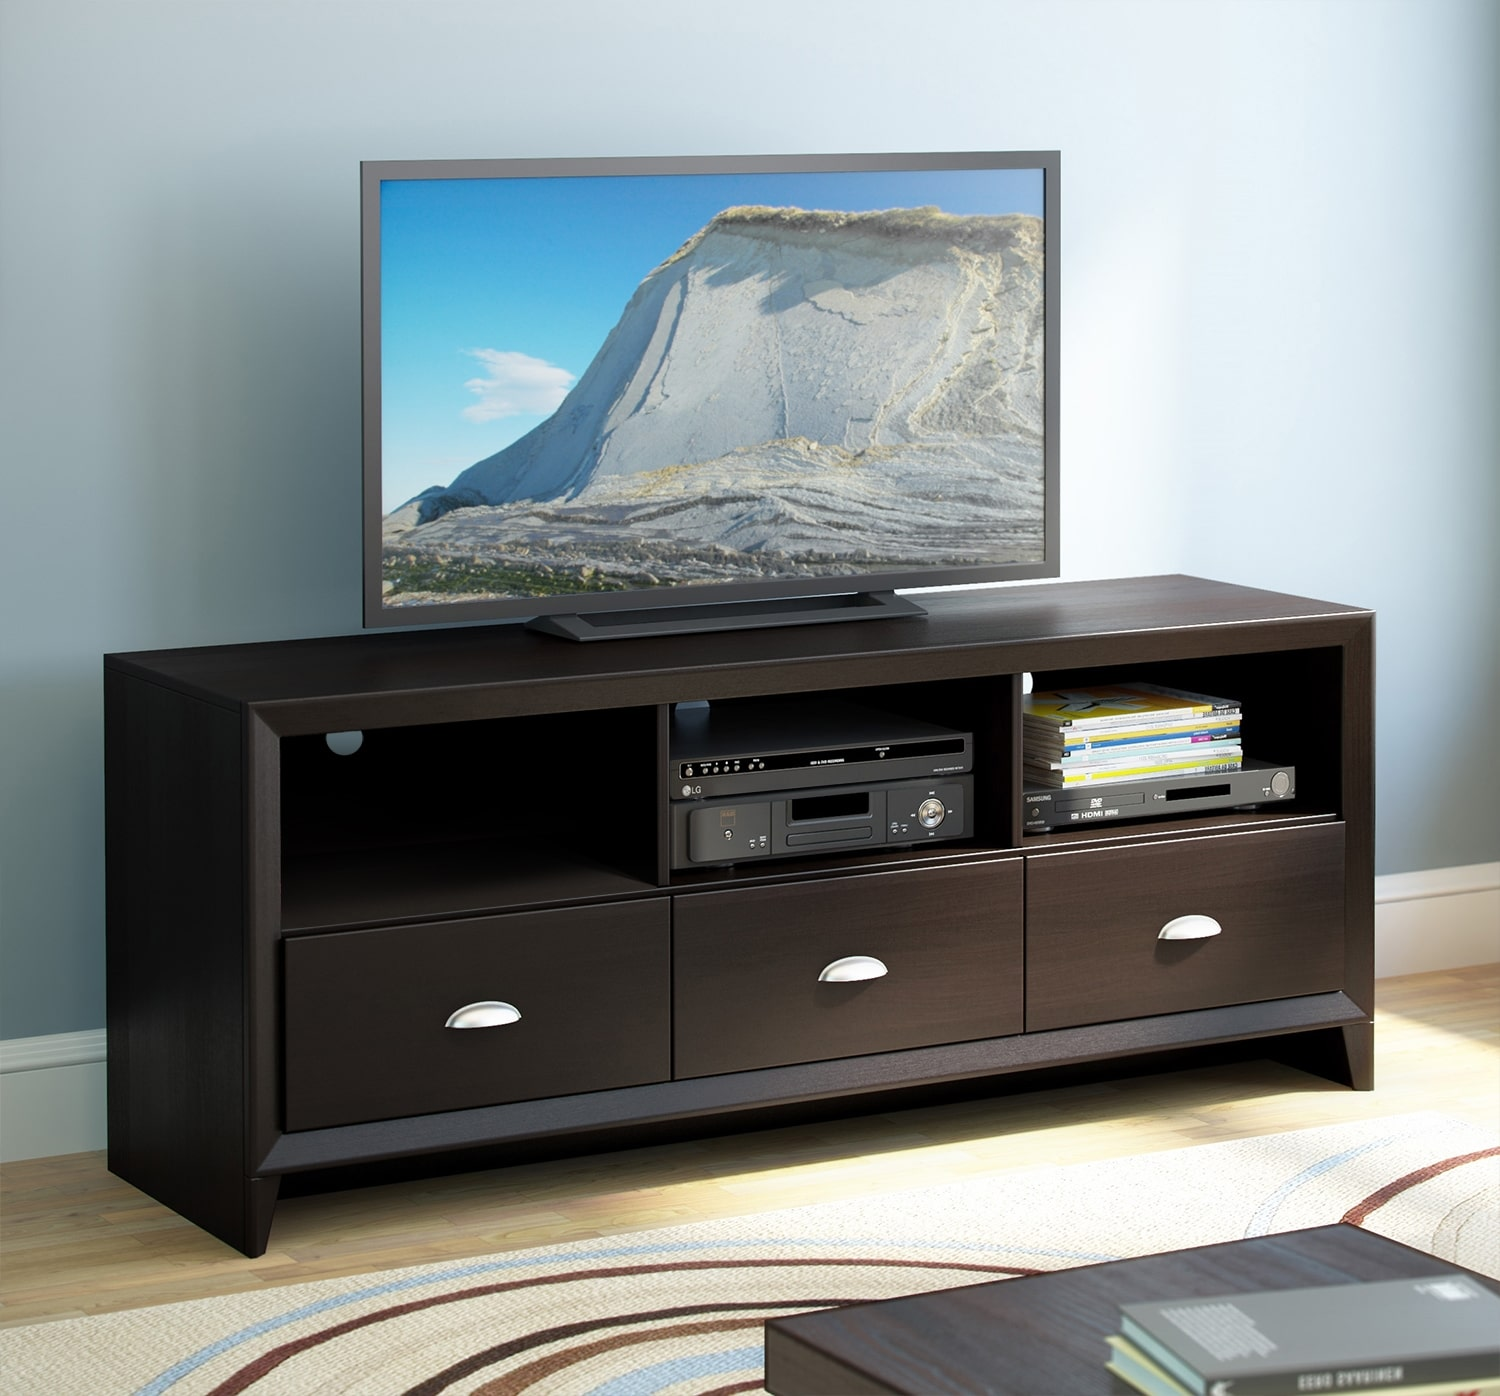 Entertainment Furniture - Hanover TV Credenza - Espresso